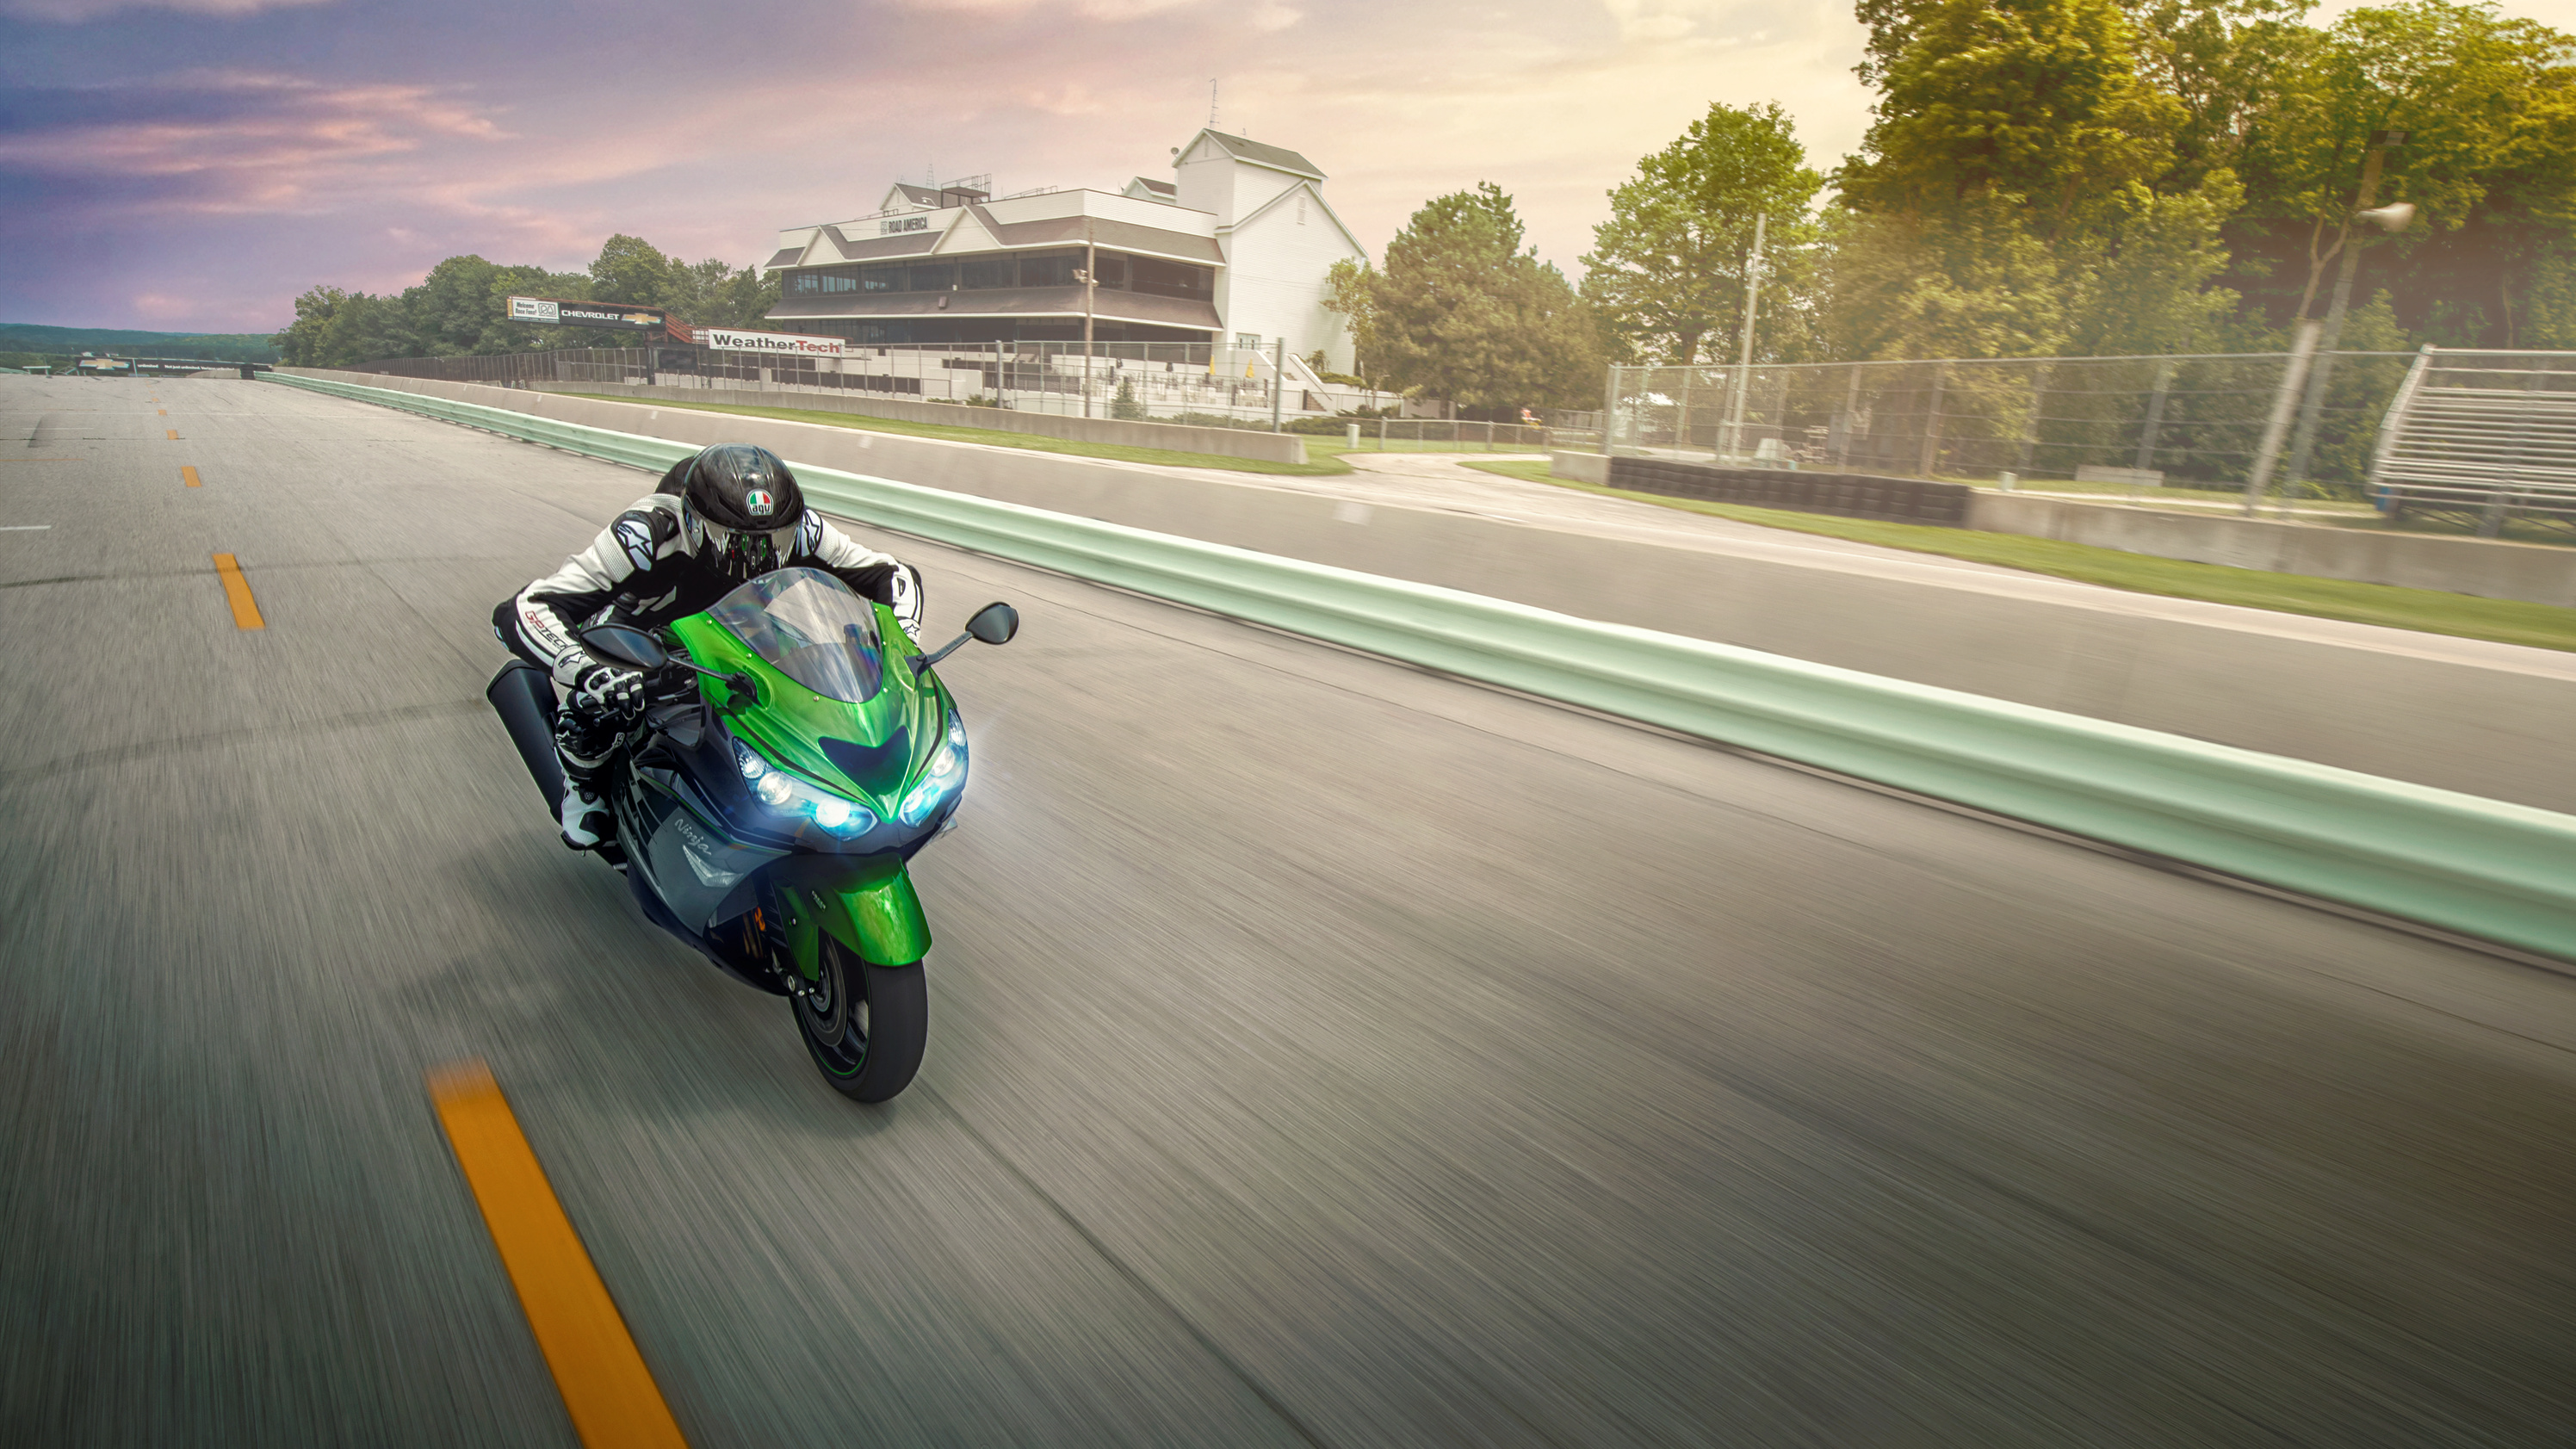 2015 - 2019 Kawasaki Ninja ZX-14R ABS | Top Speed